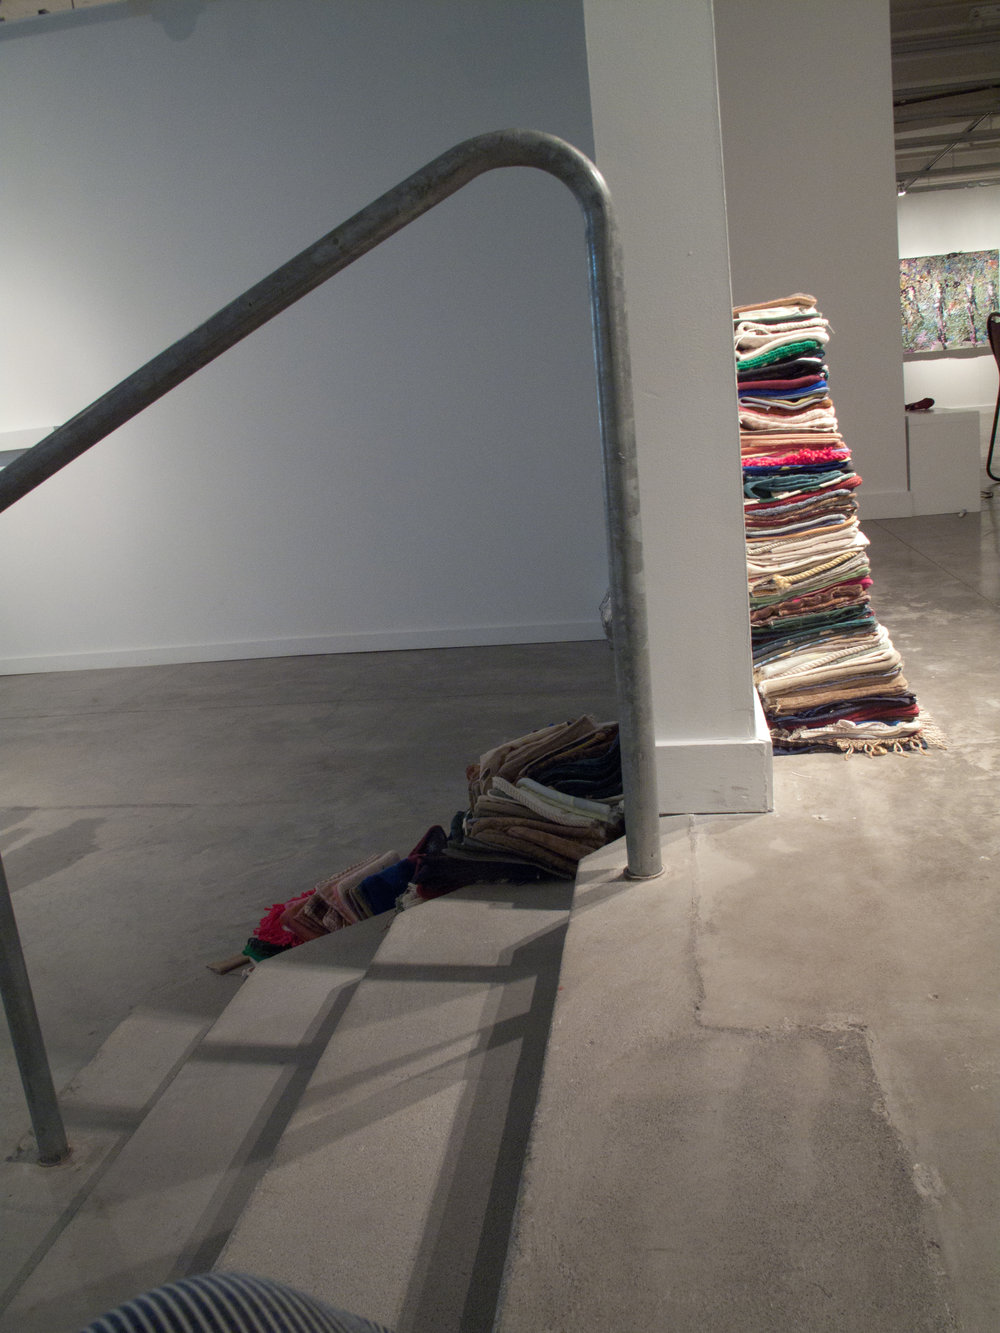 Leaning Stack, cut pillow cases, gallery wall.2012